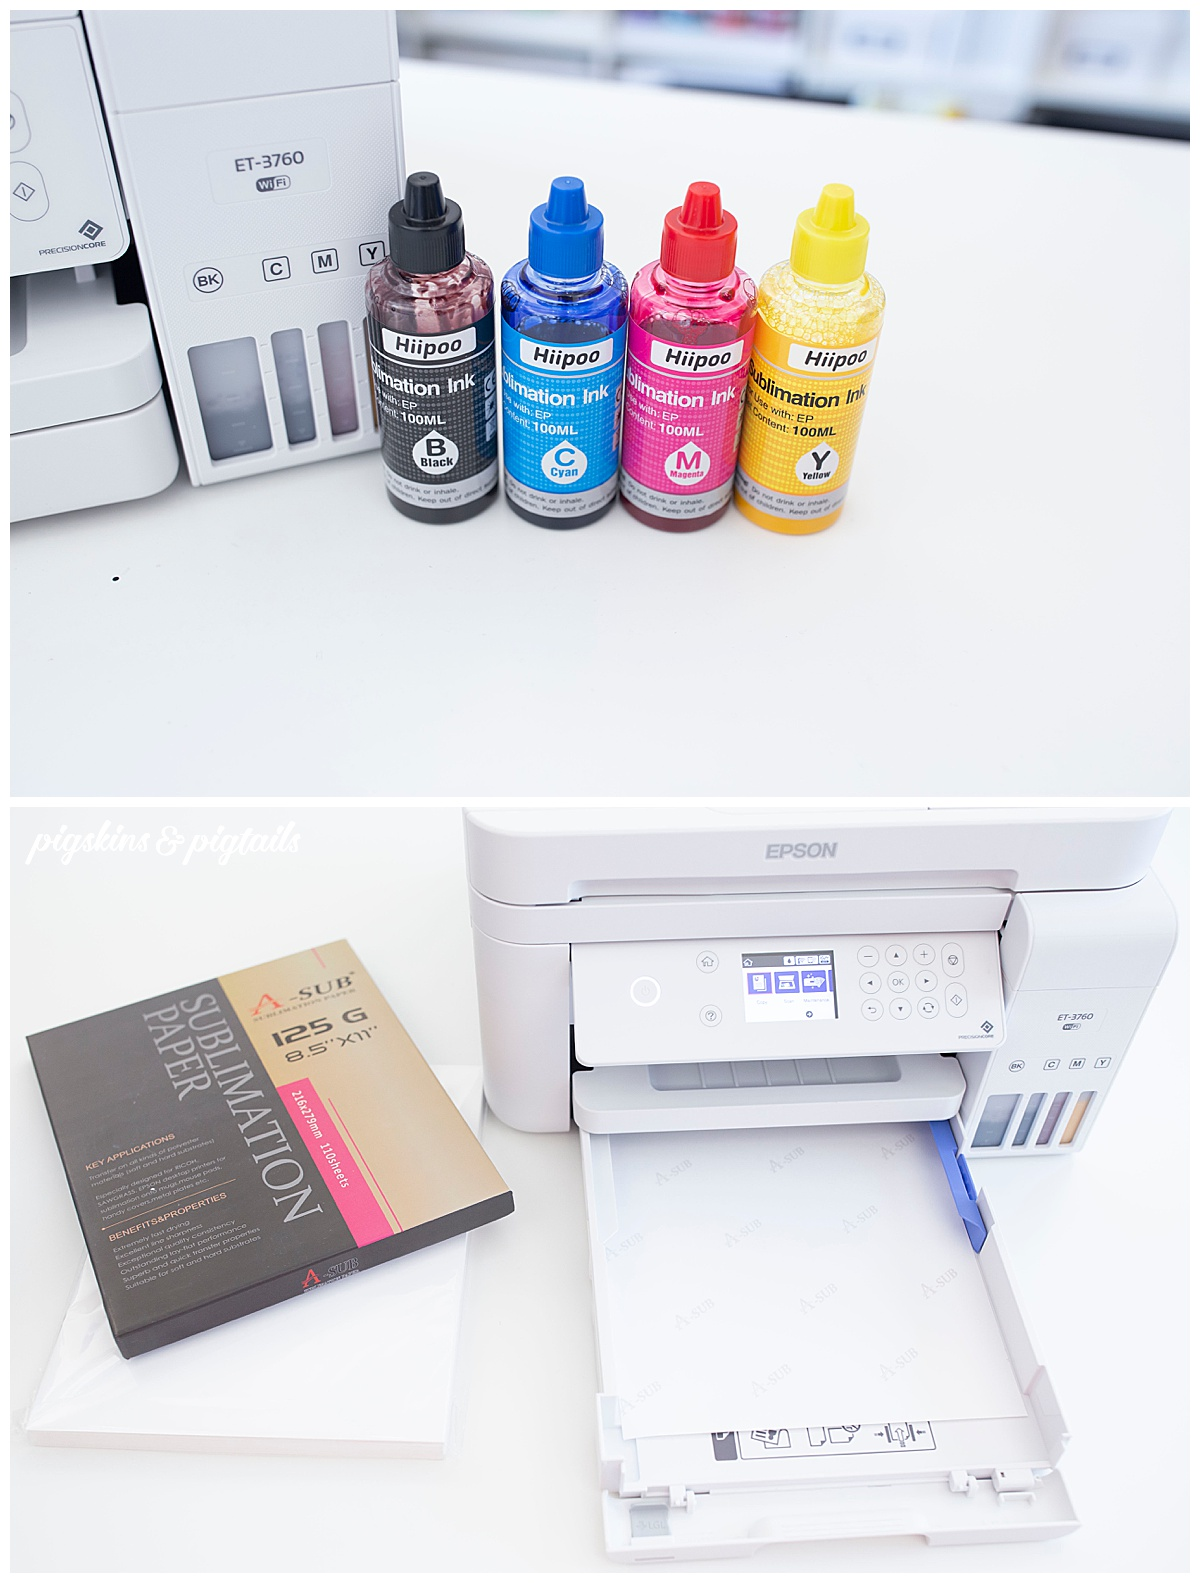 sublimation printer setup how to hiipoo ink